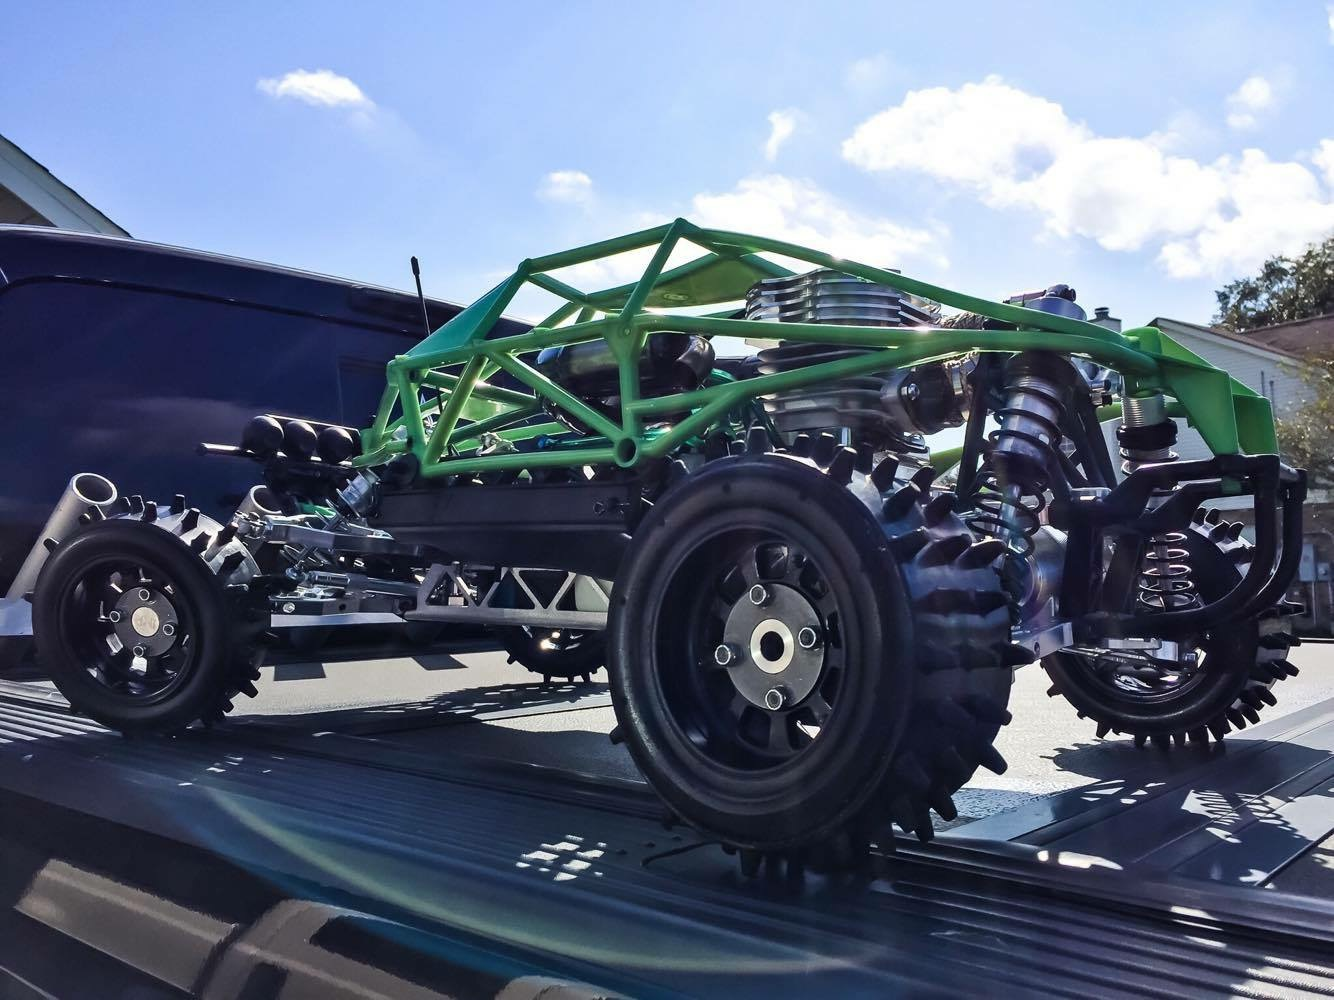 Super spikes, custom Baja, Detroit performance rc, alpha Baja Tommy